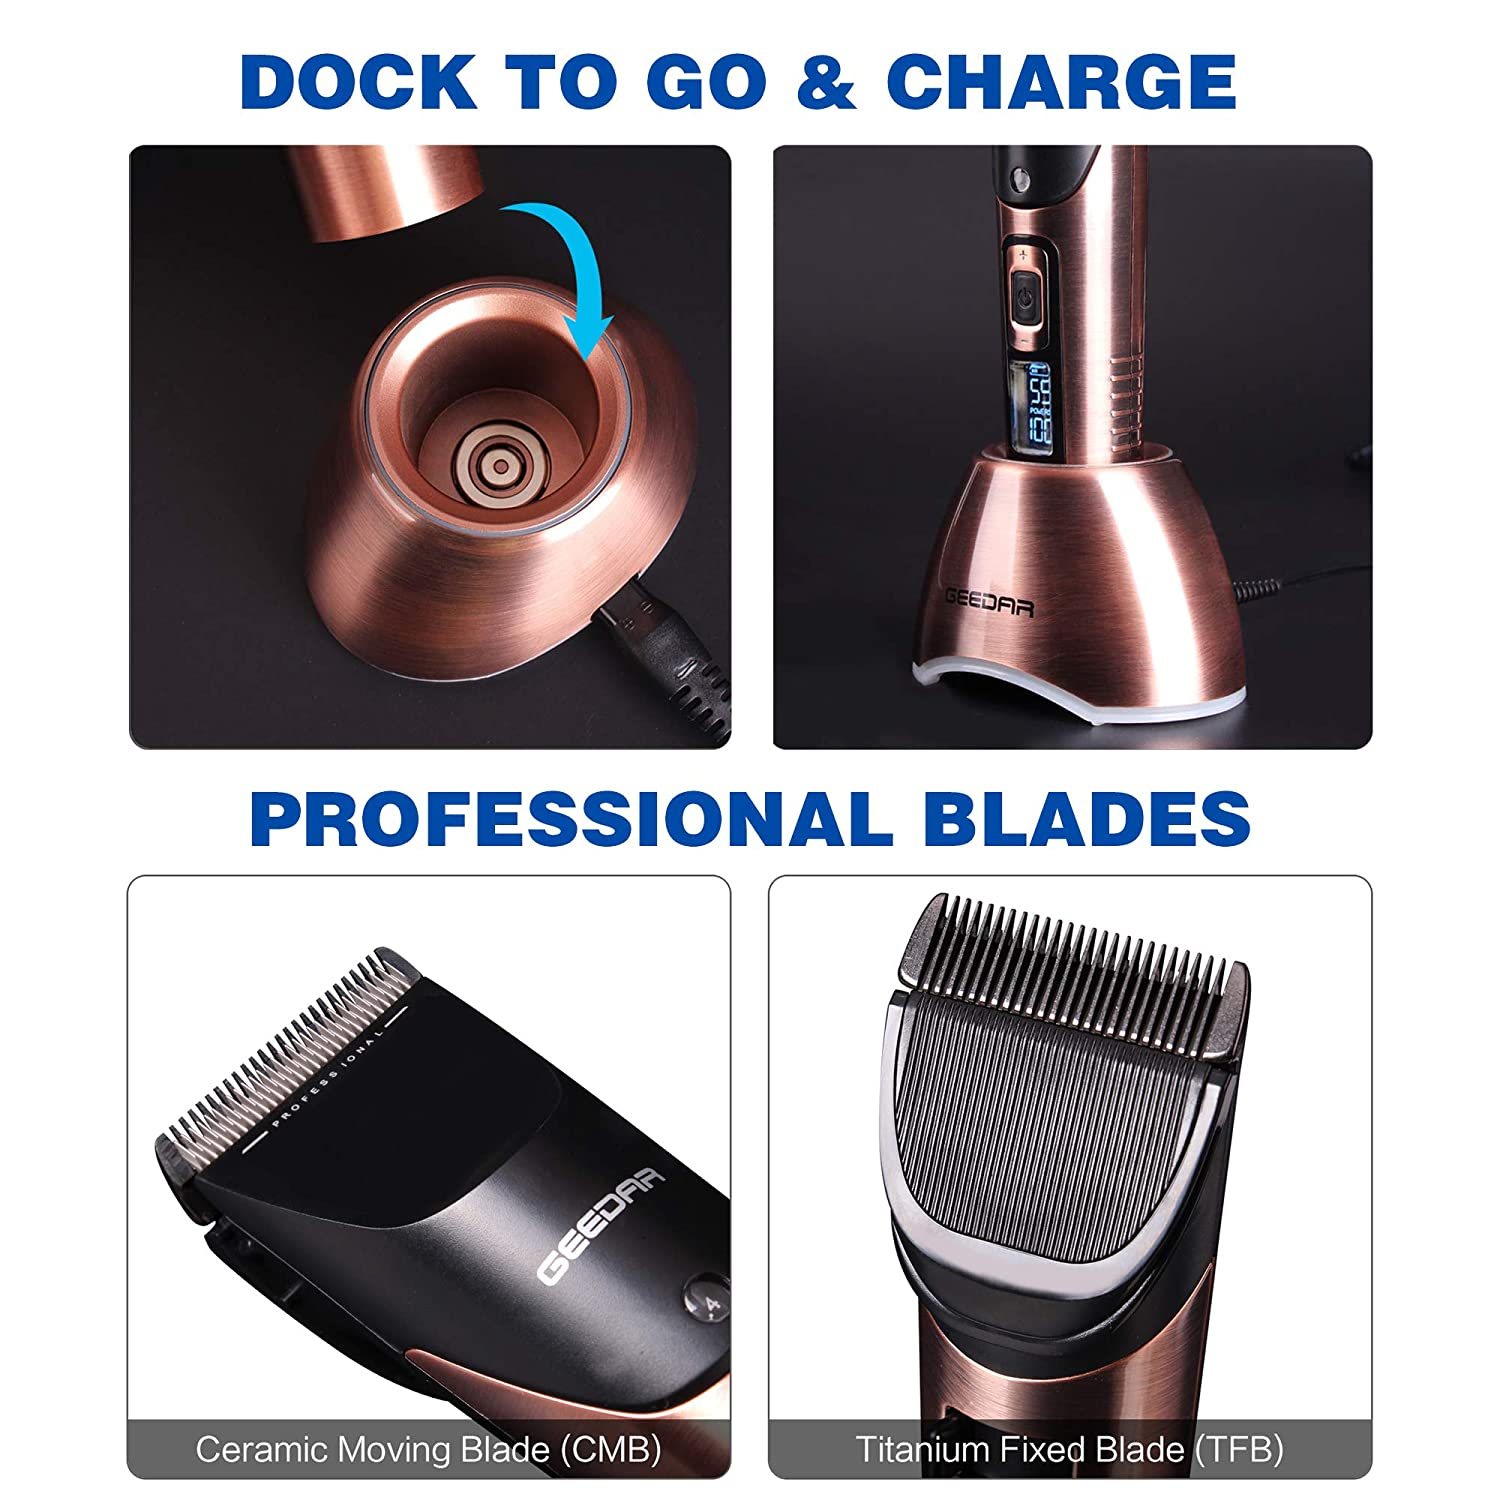 Men's Professional Hair Clippers, Cordless Titanium Ceramic Blade LED Display Hair Clippers